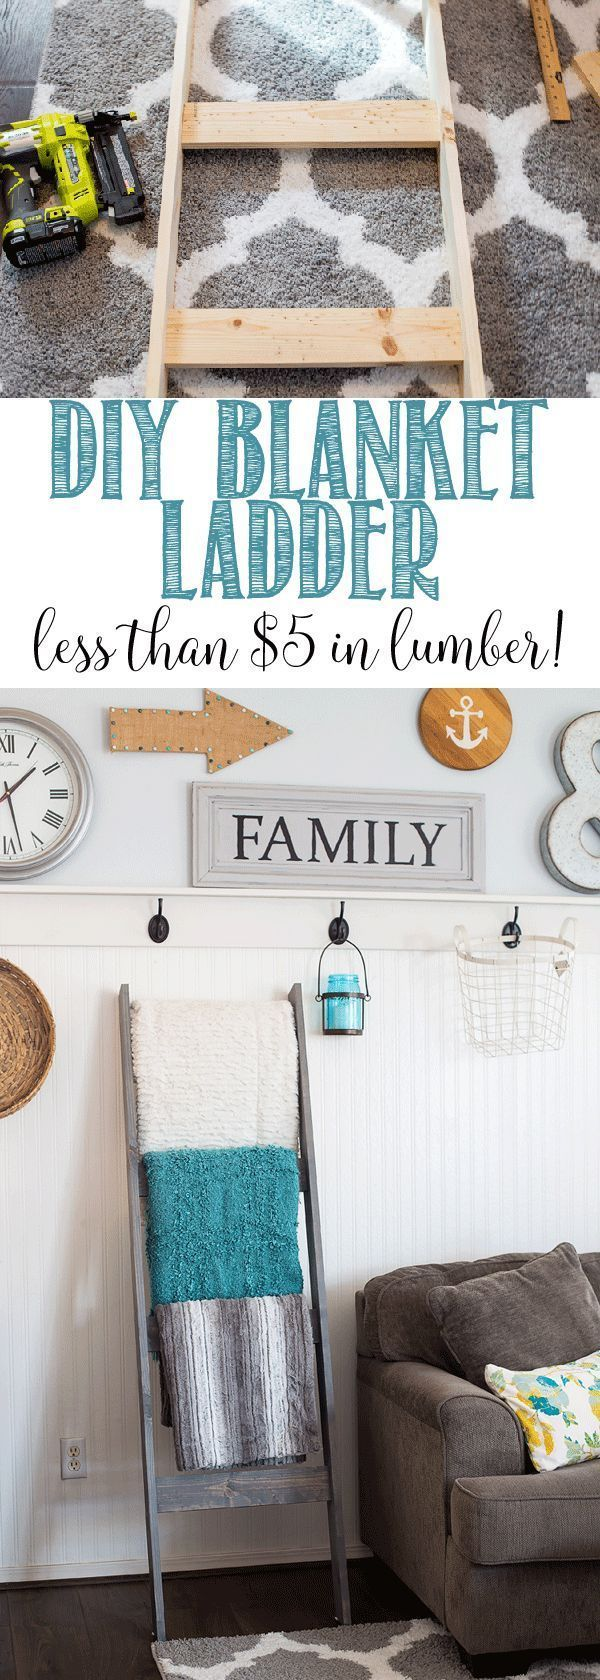 DIY Woodworking Ideas DIY Blanket Ladder for less than $5 in lumber!!!! Great step by step tutorial so...